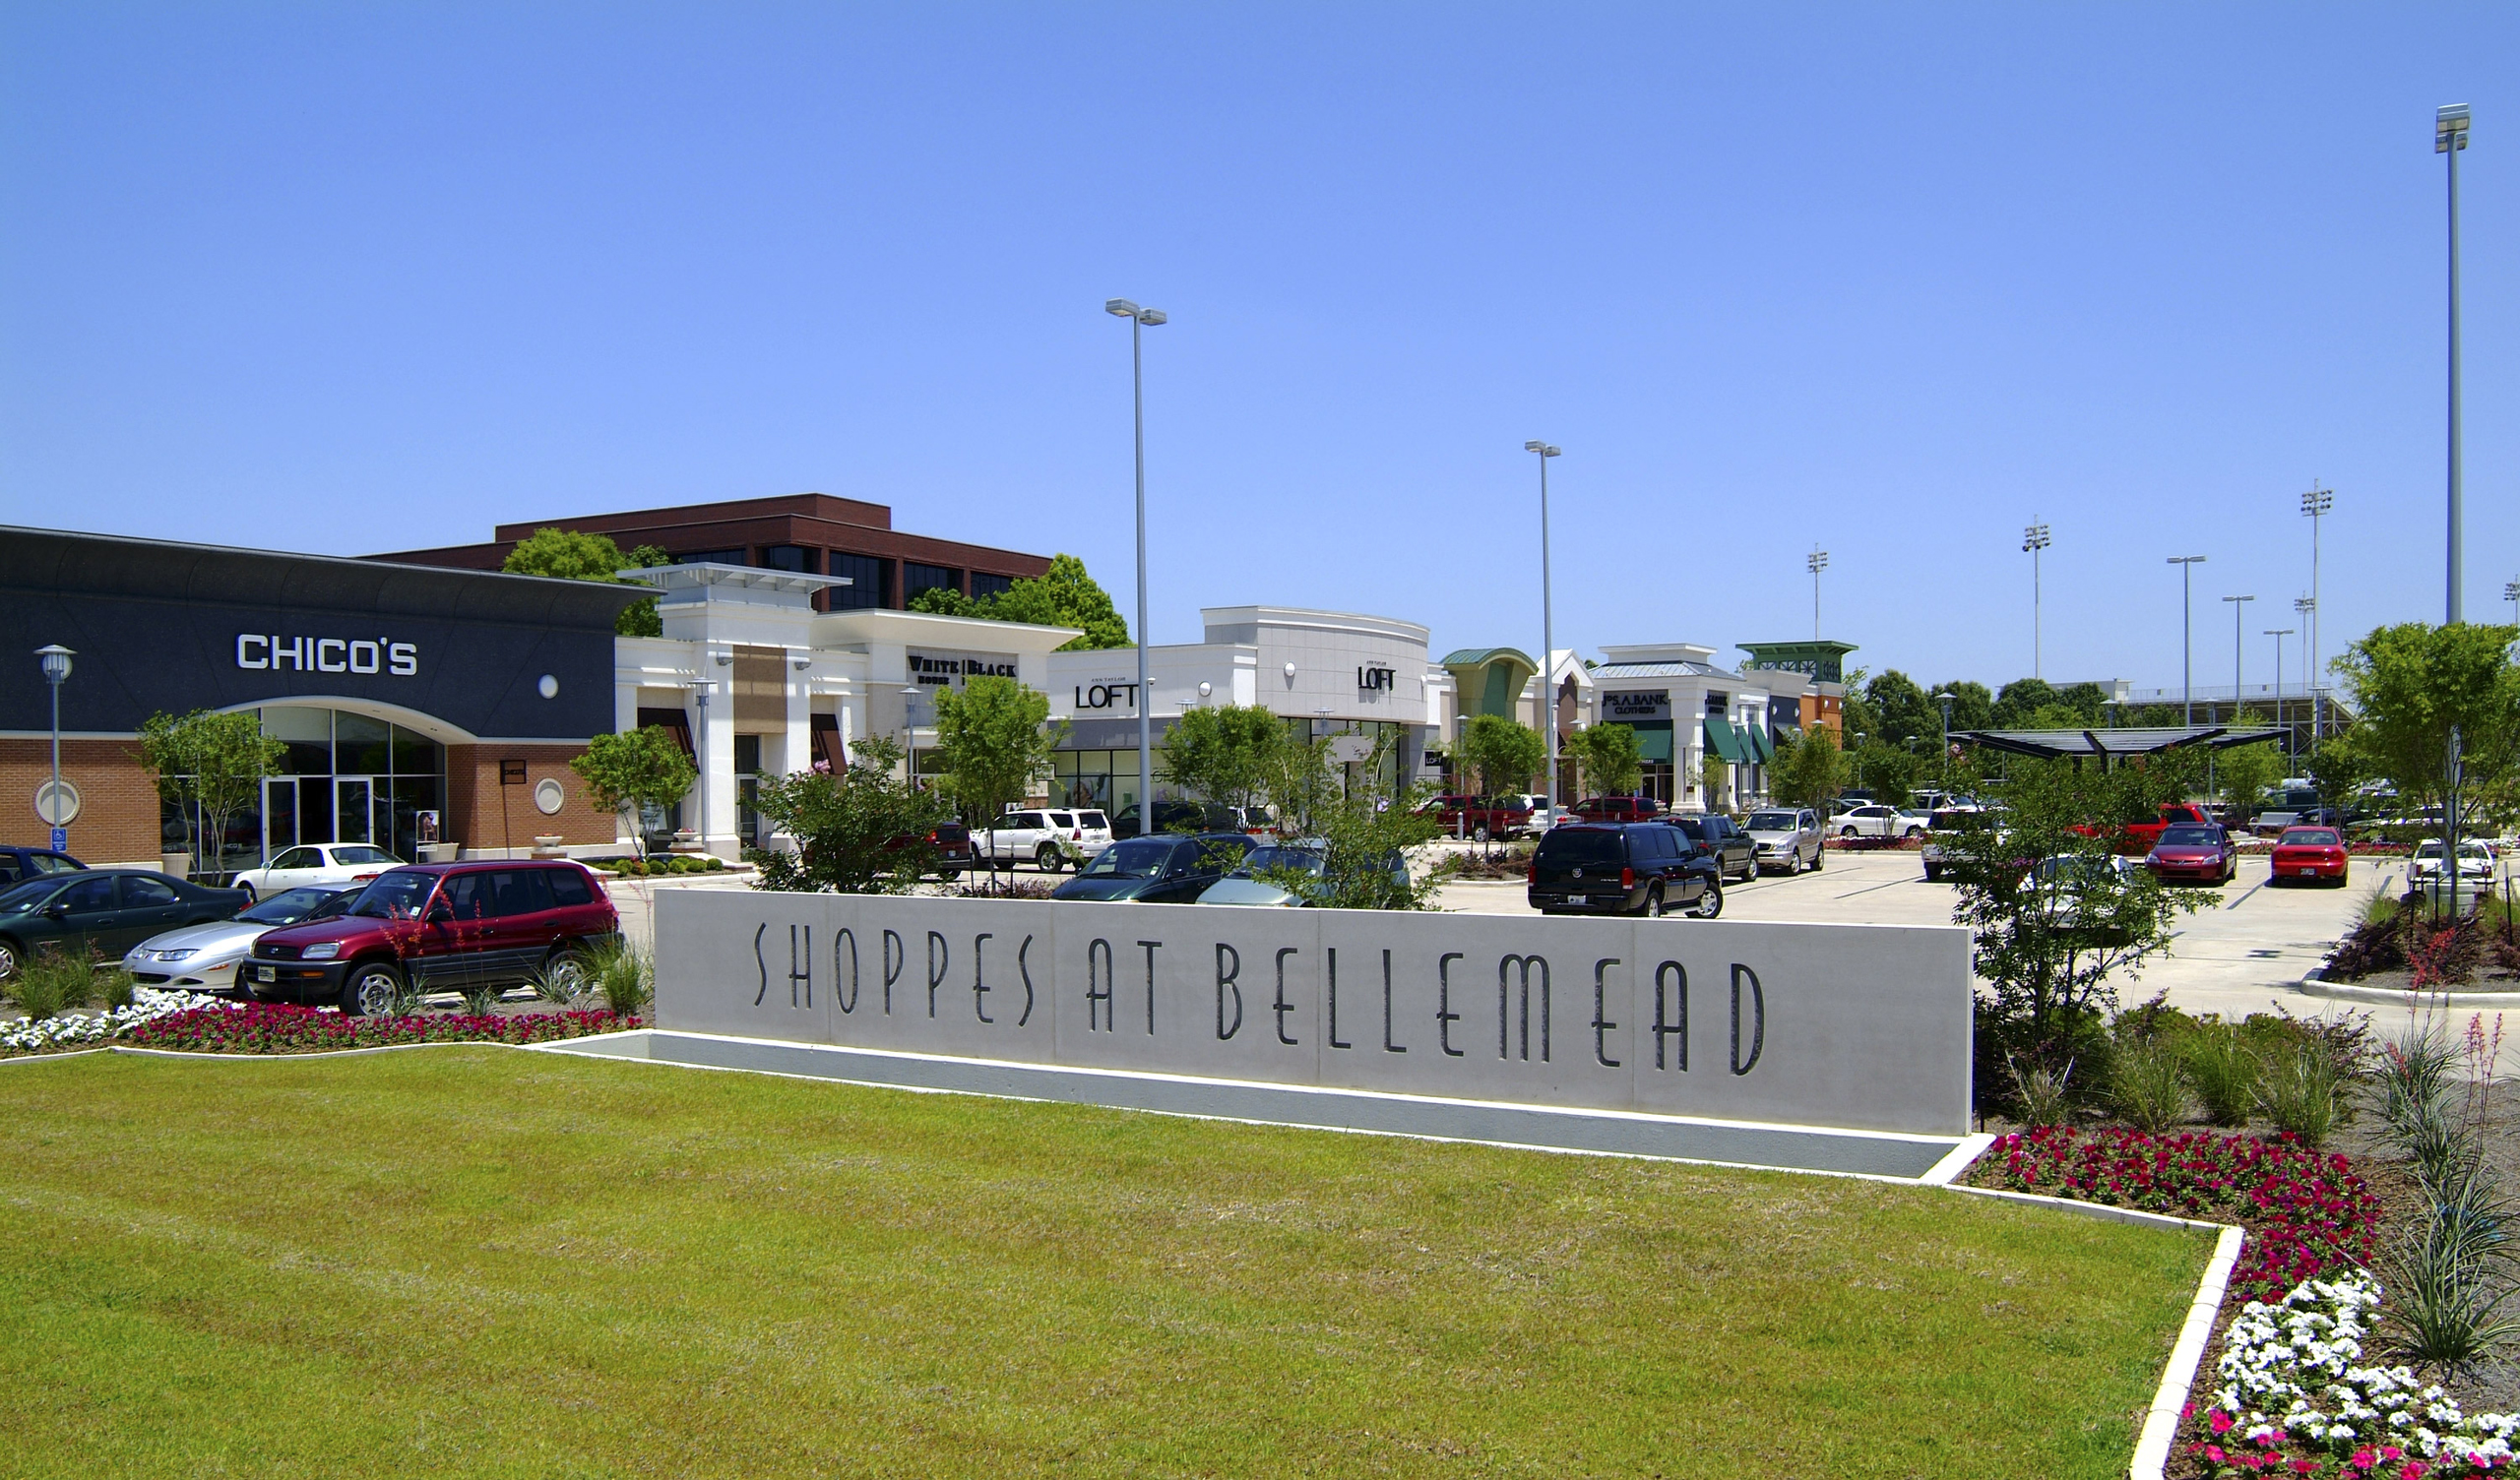 Shoppes at Bellemead (2)